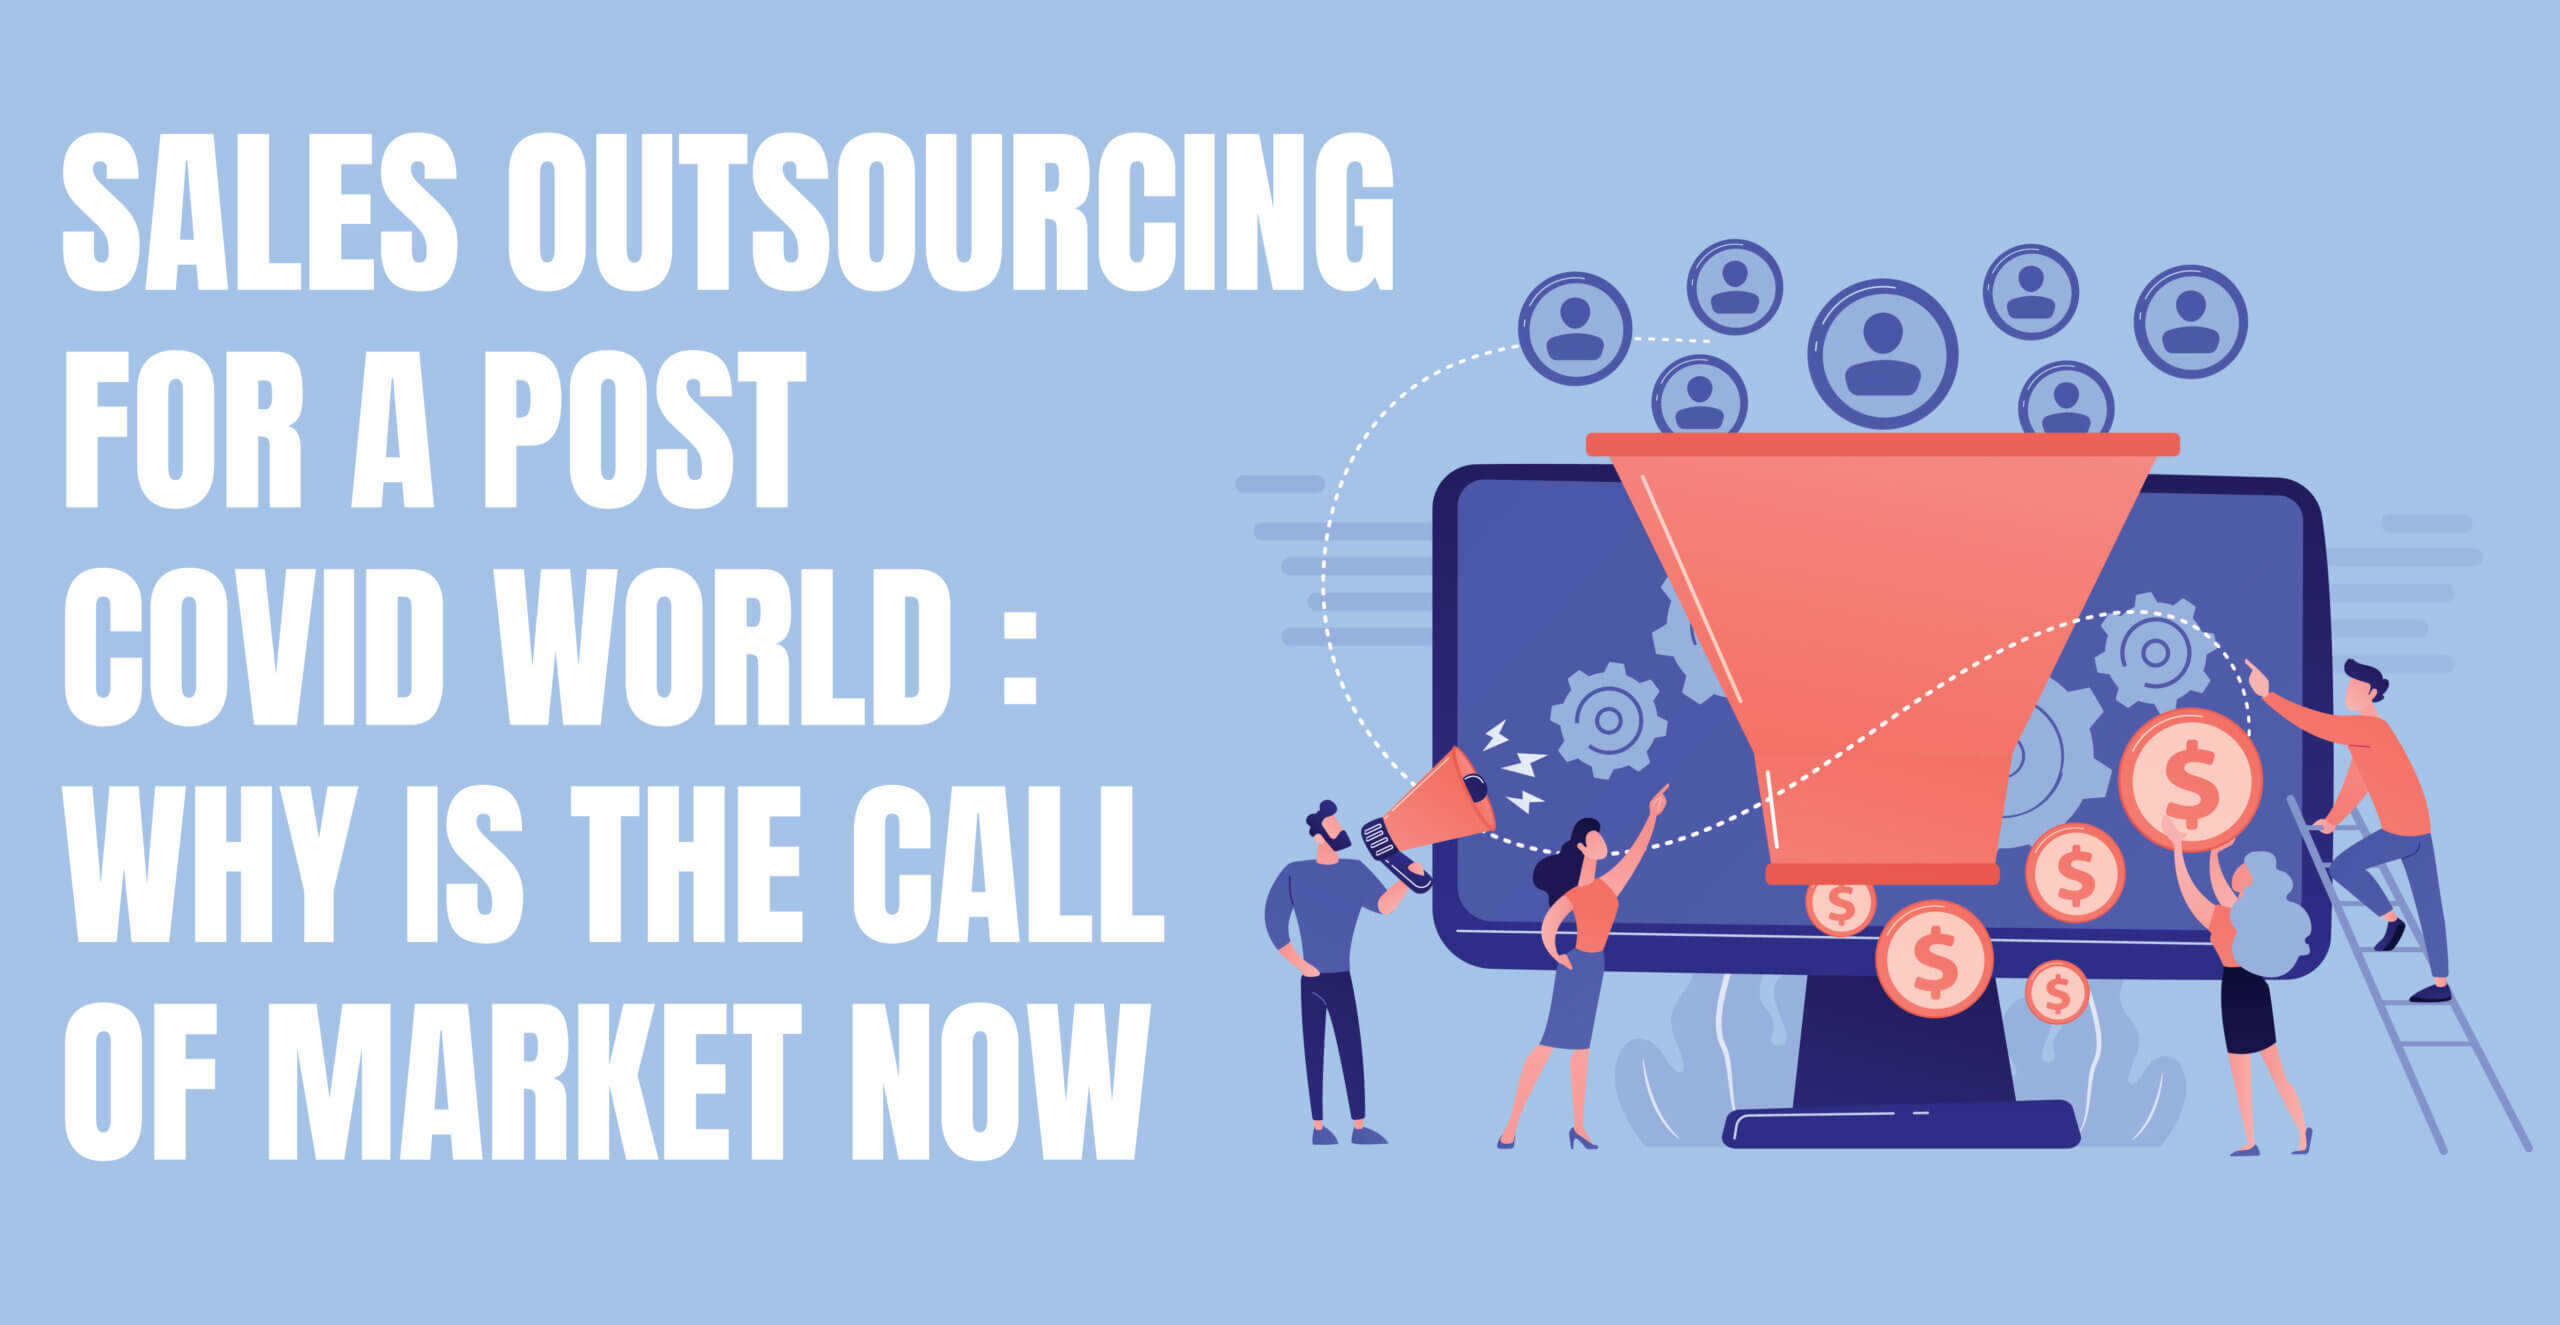 Sales outsourcing for a post covid world: why is the call of the market now?